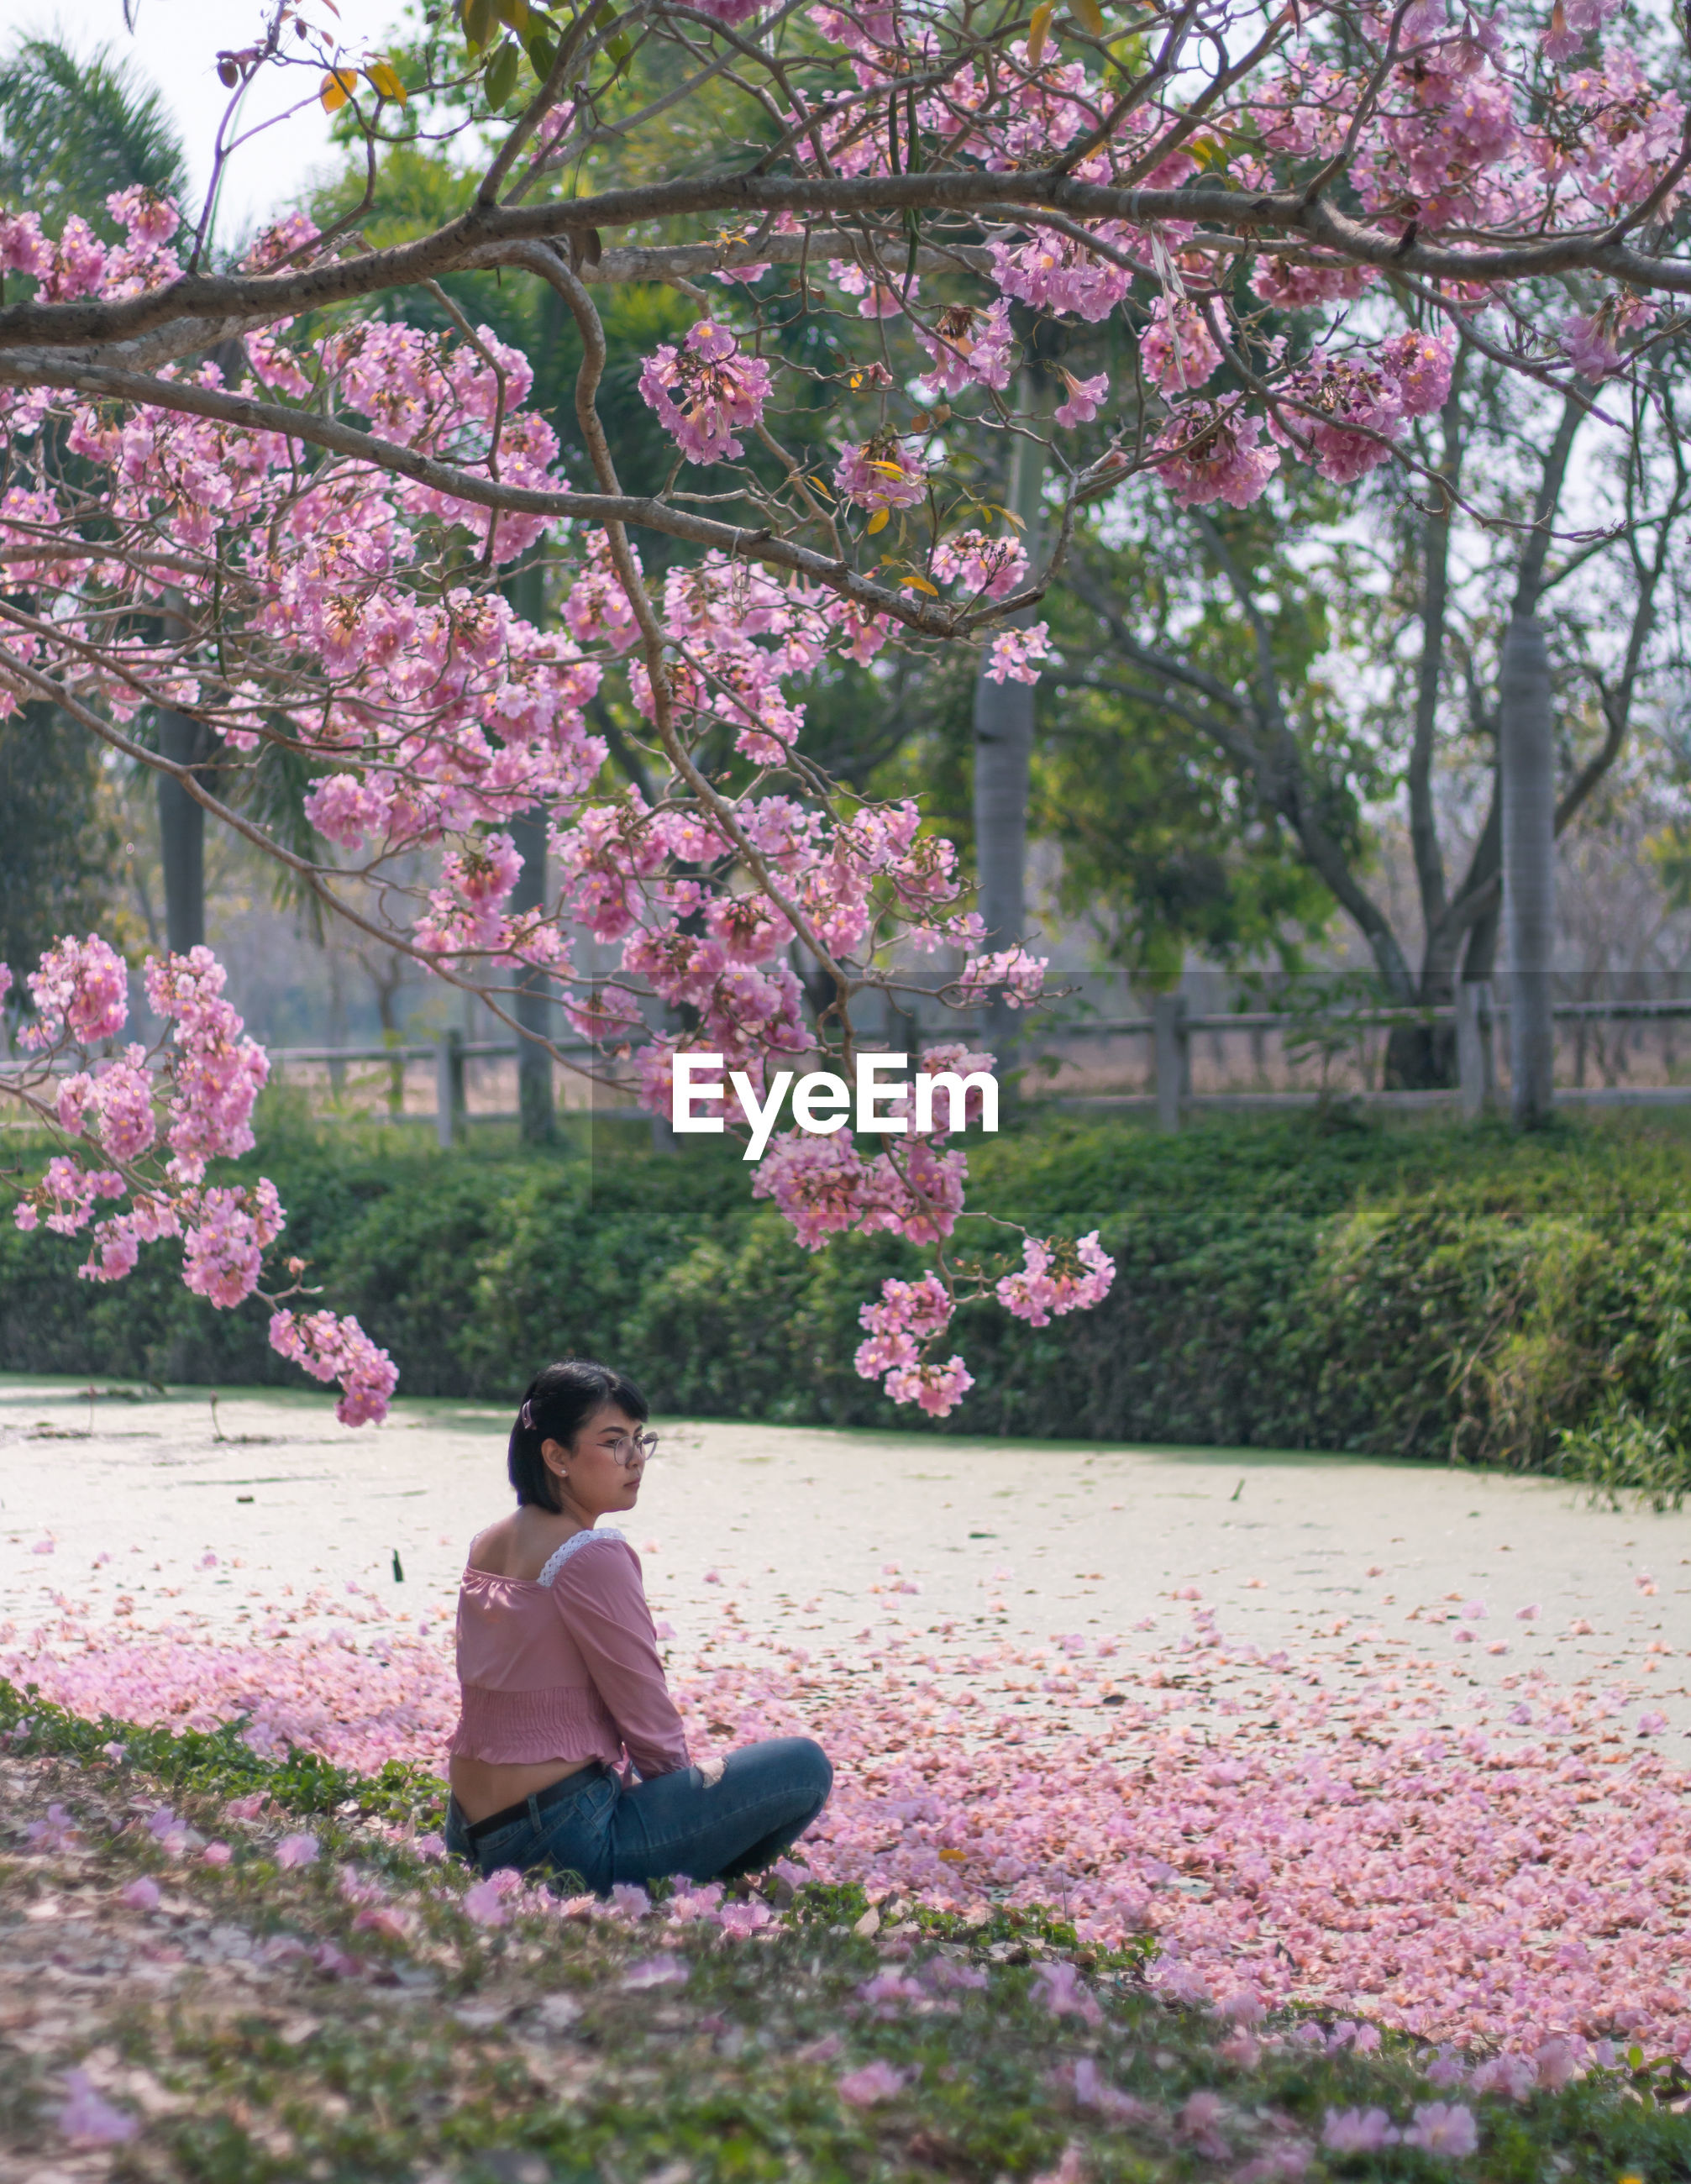 Woman sitting on cherry blossom in park